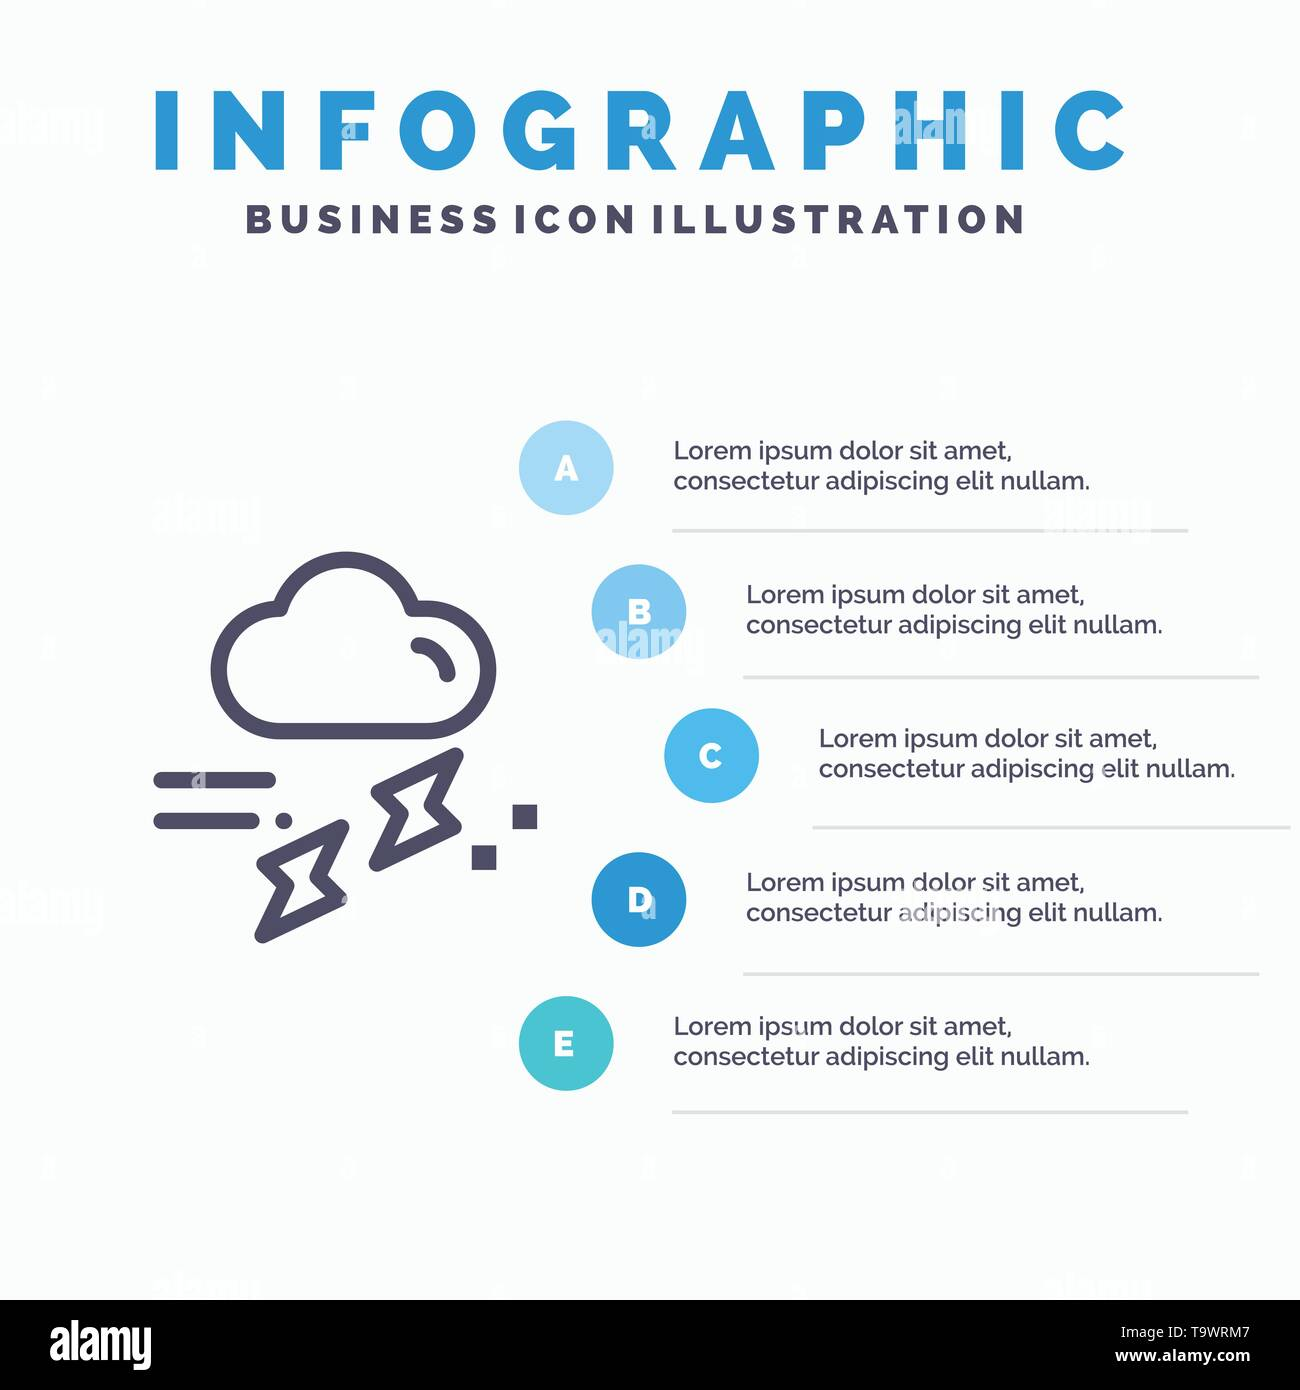 Cloud, Rain, Rainfall, Rainy, Thunder Line icon with 5 steps presentation infographics Background - Stock Image